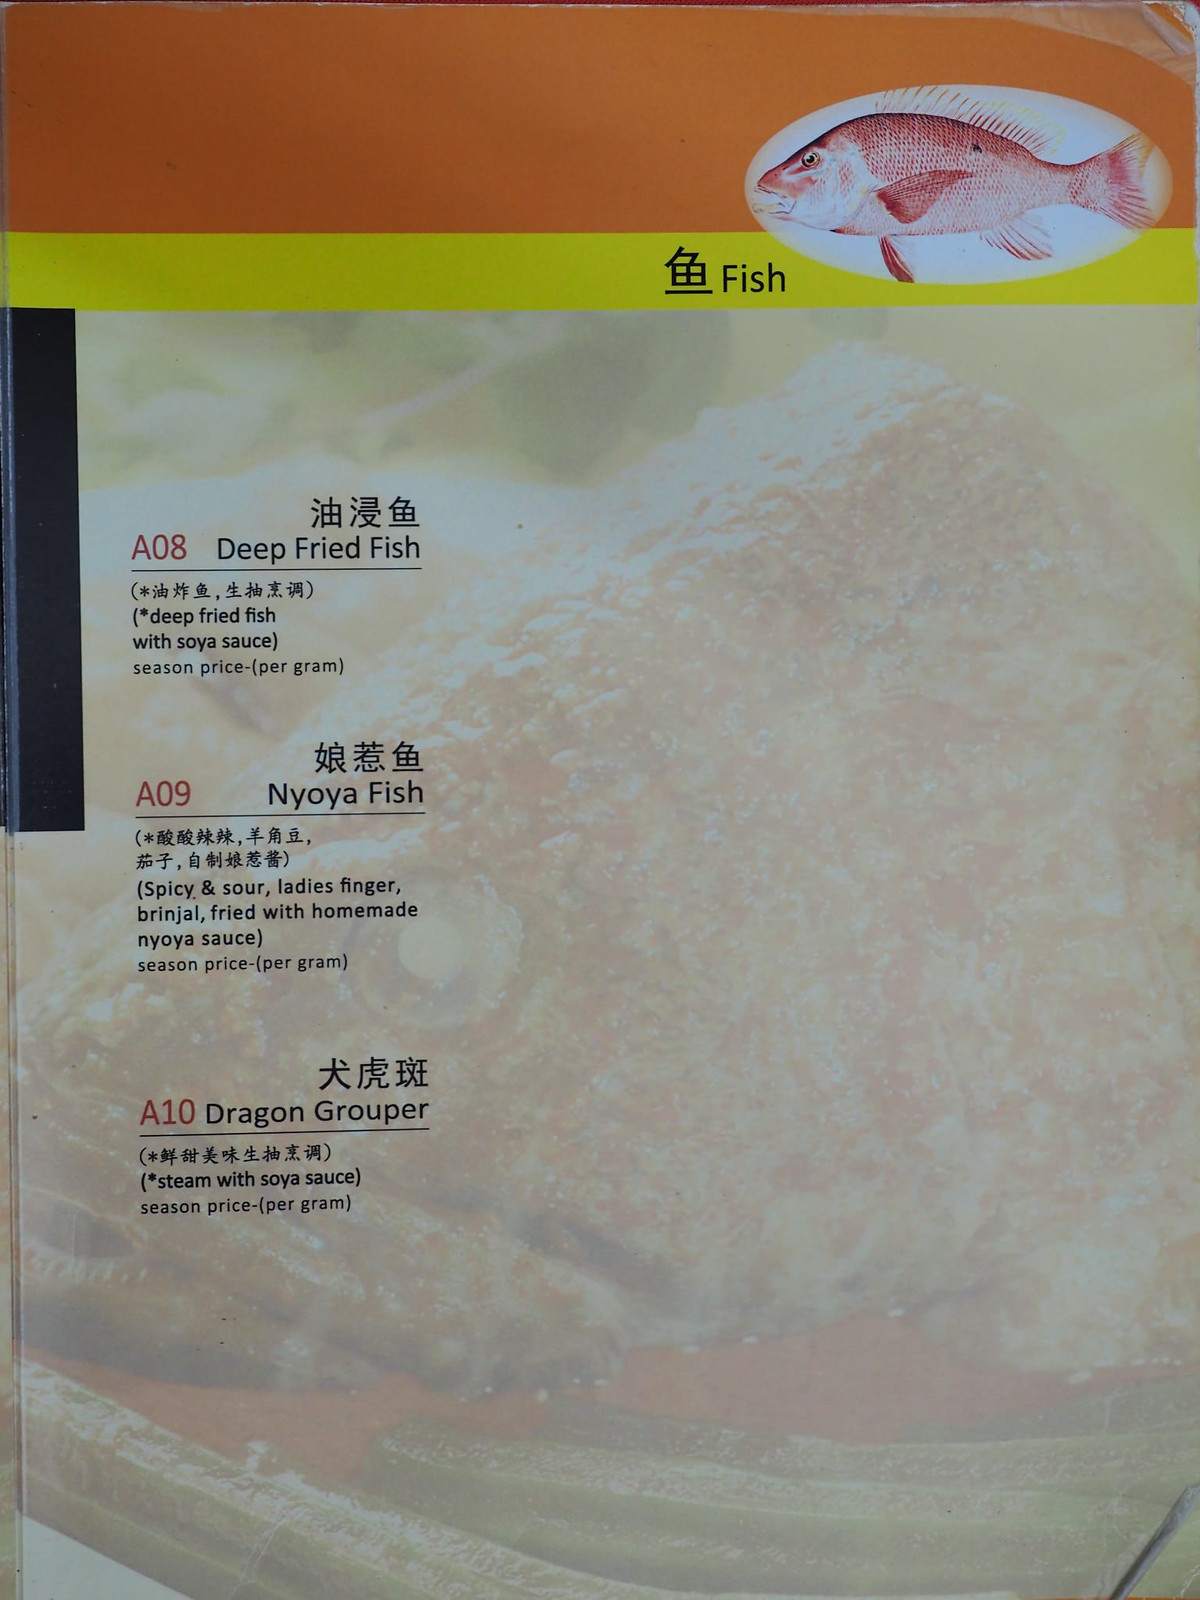 Fishes menu from Pangkor Village Seafood, Taman Megah